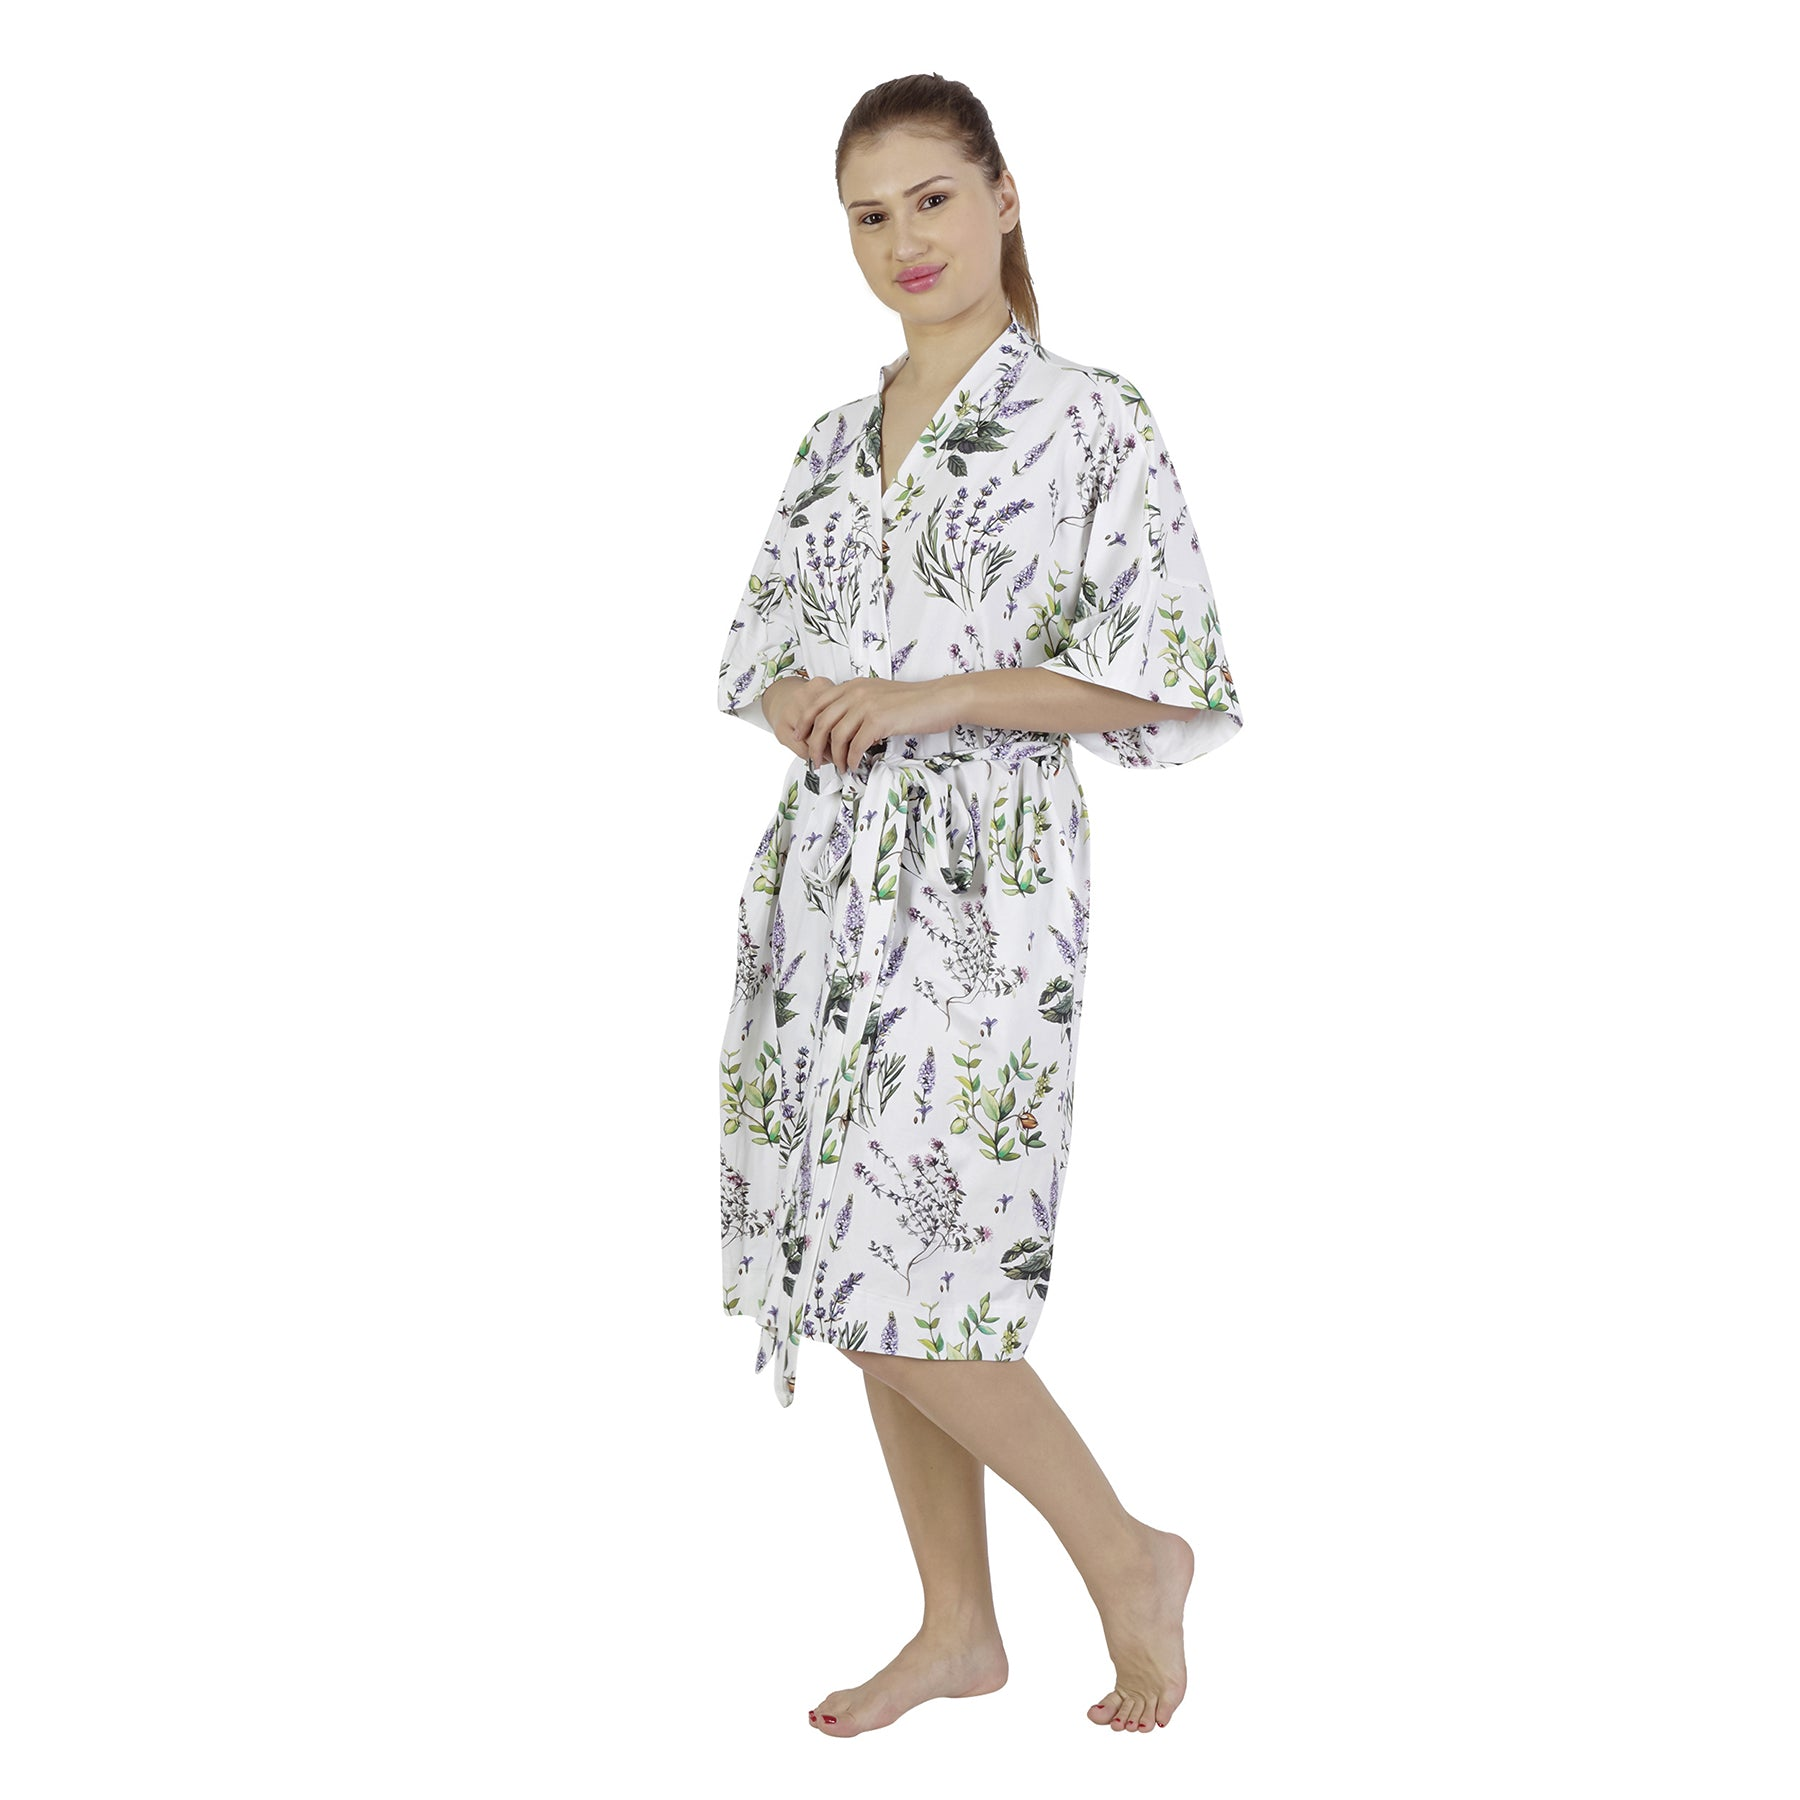 Botanical Comfy Mommy Organic Stretch Cotton Maternity Robe